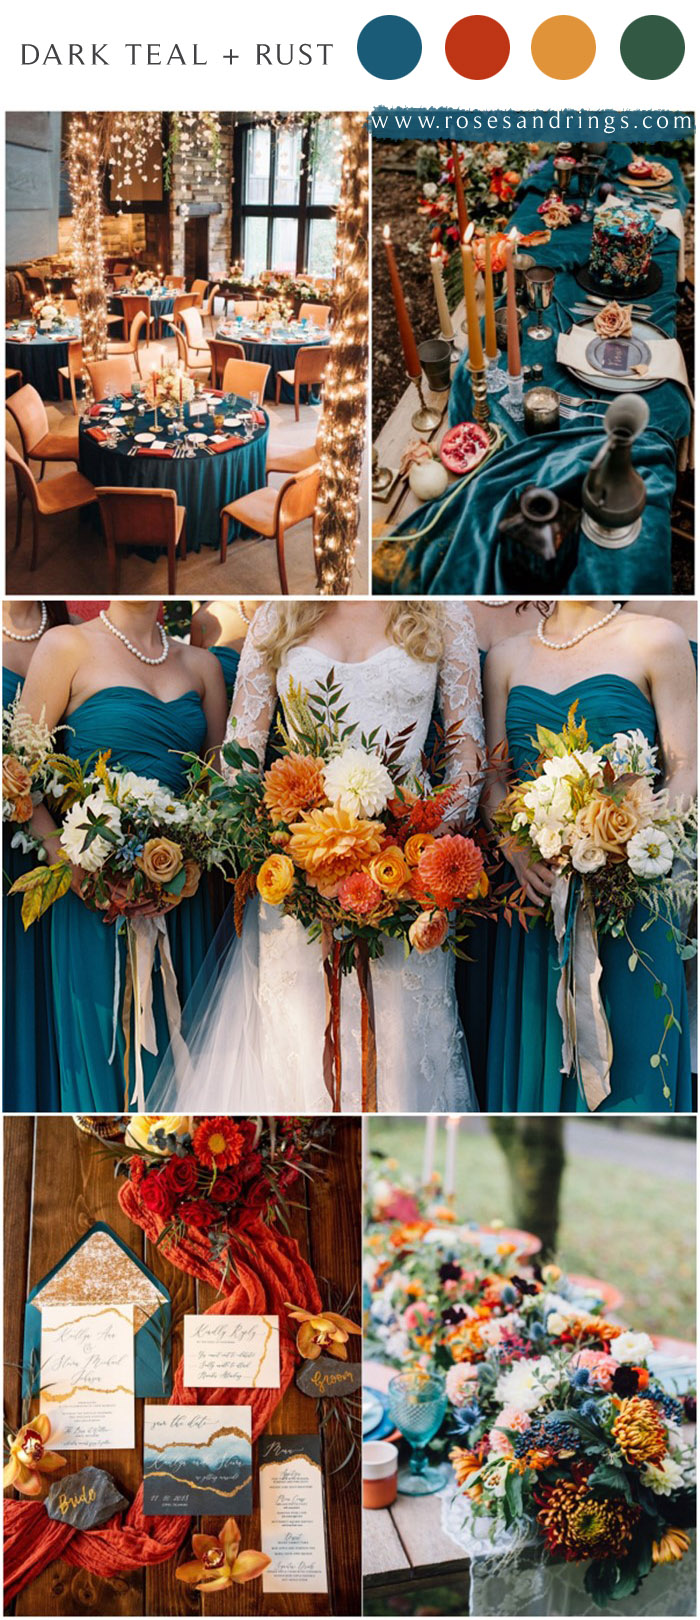 Dark teal and burnt orange rust fall wedding color ideas 2021 #wedding #weddingcolors #weddingideas #fallwedding #blueweddings